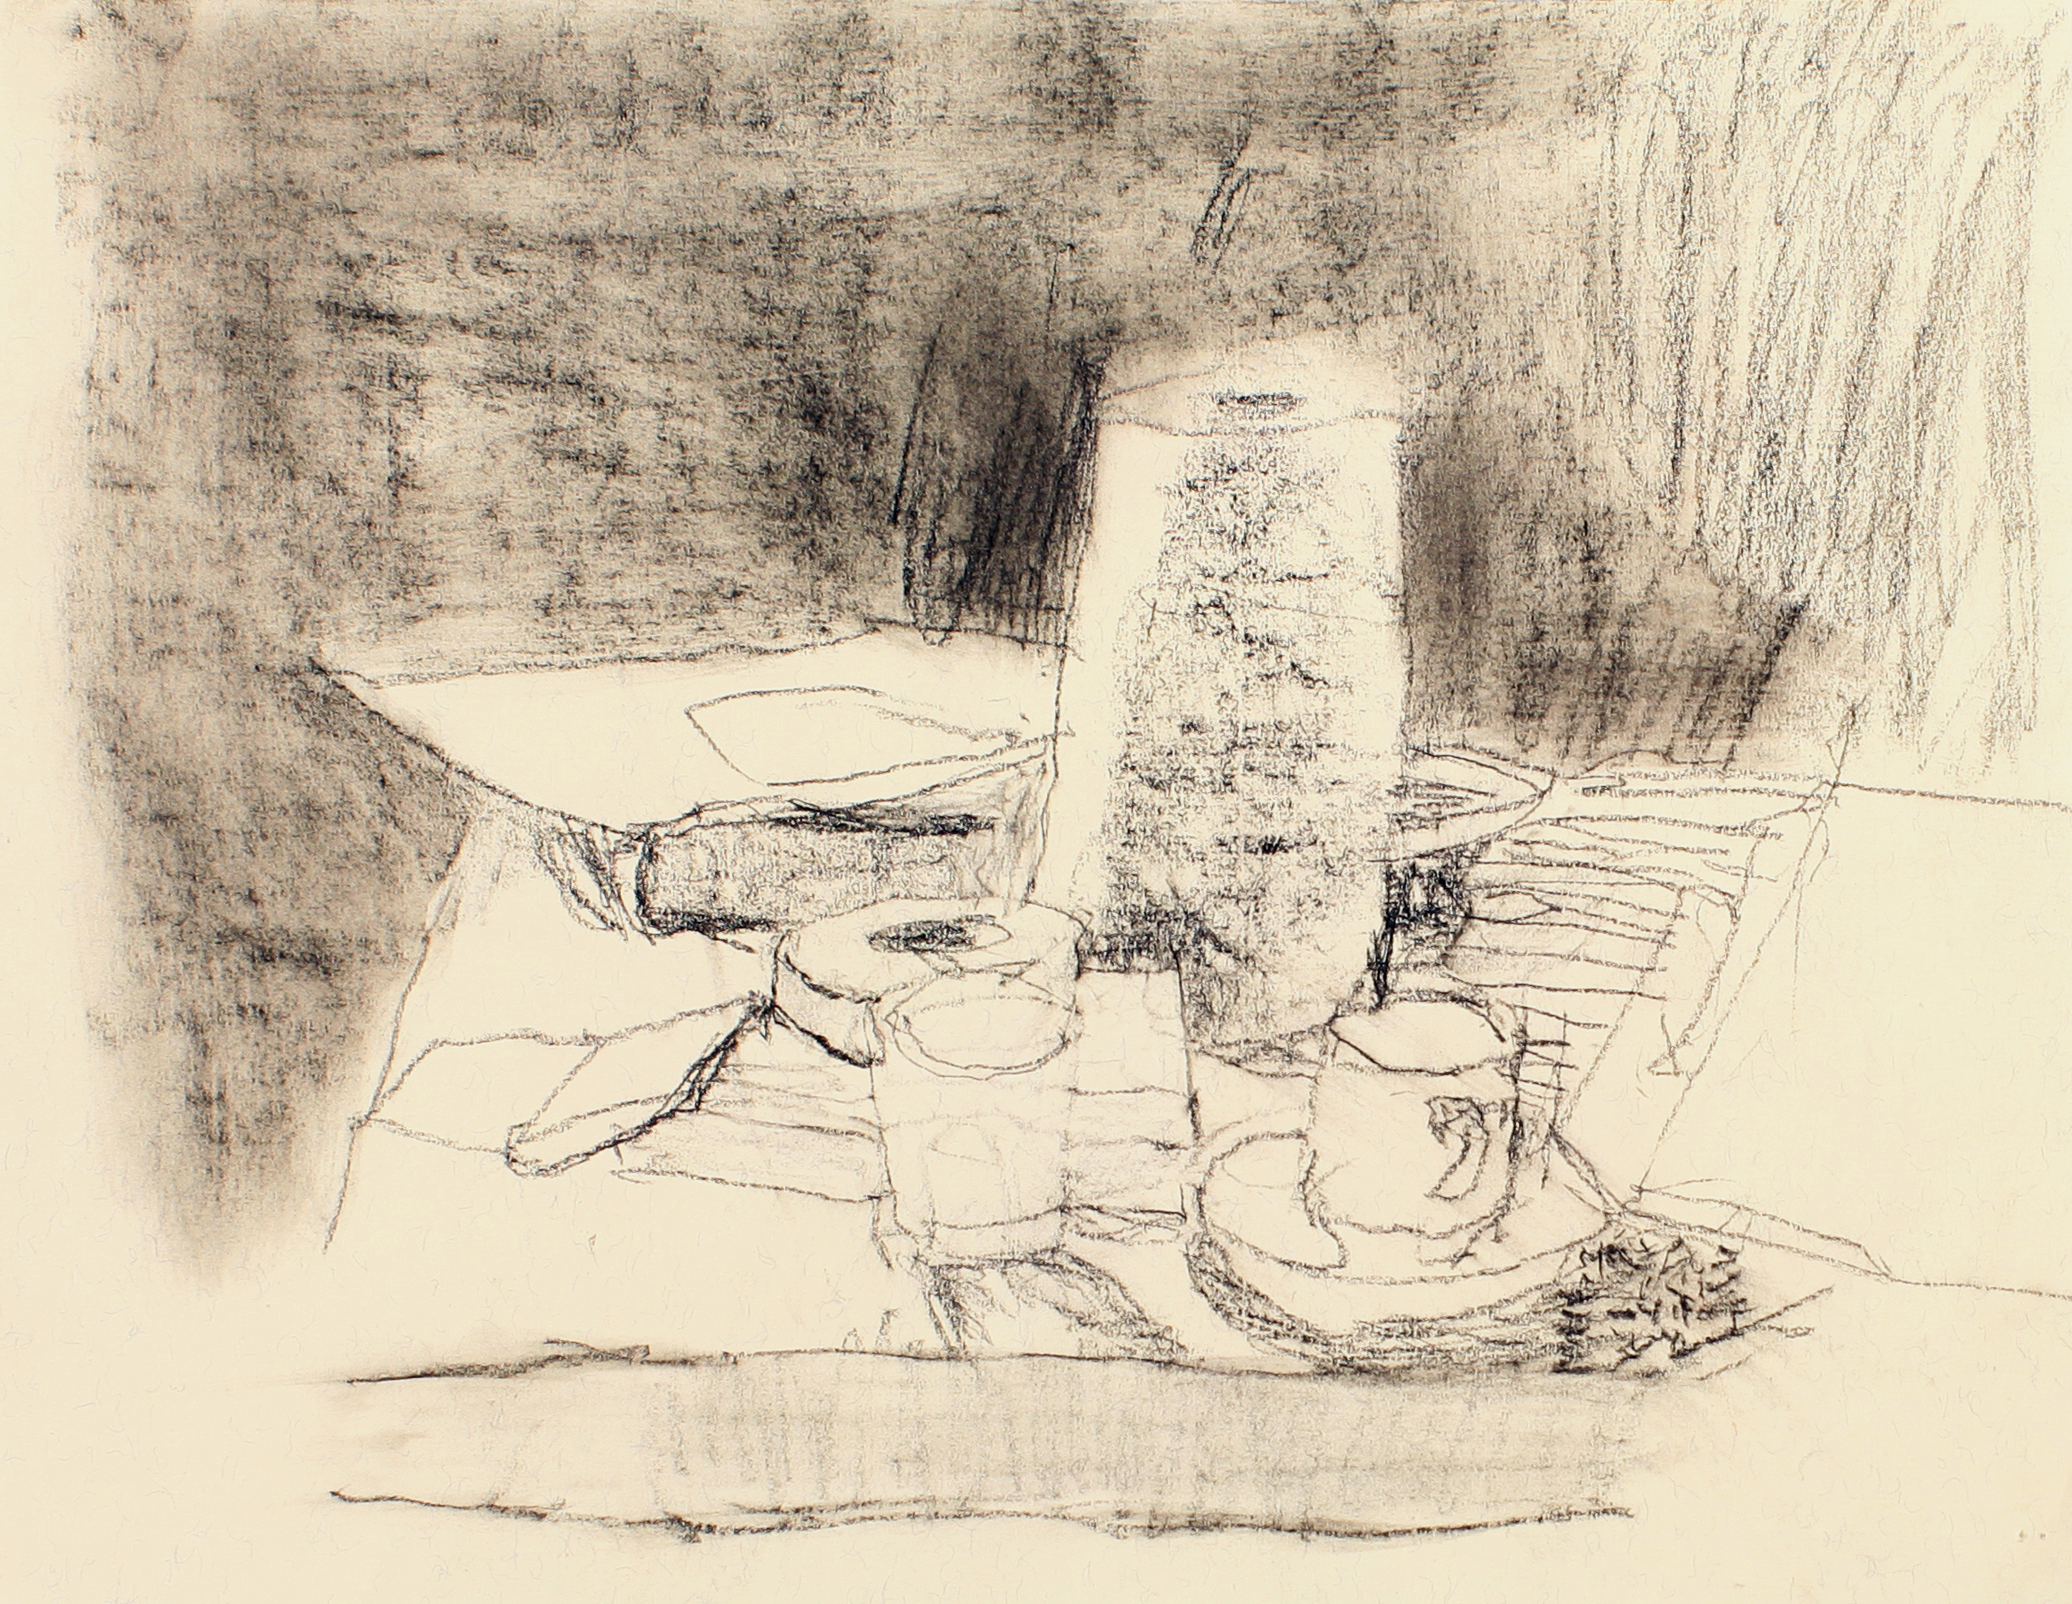 1999_Still_life_charcoal_on_paper_10x13in_WPF080.jpg